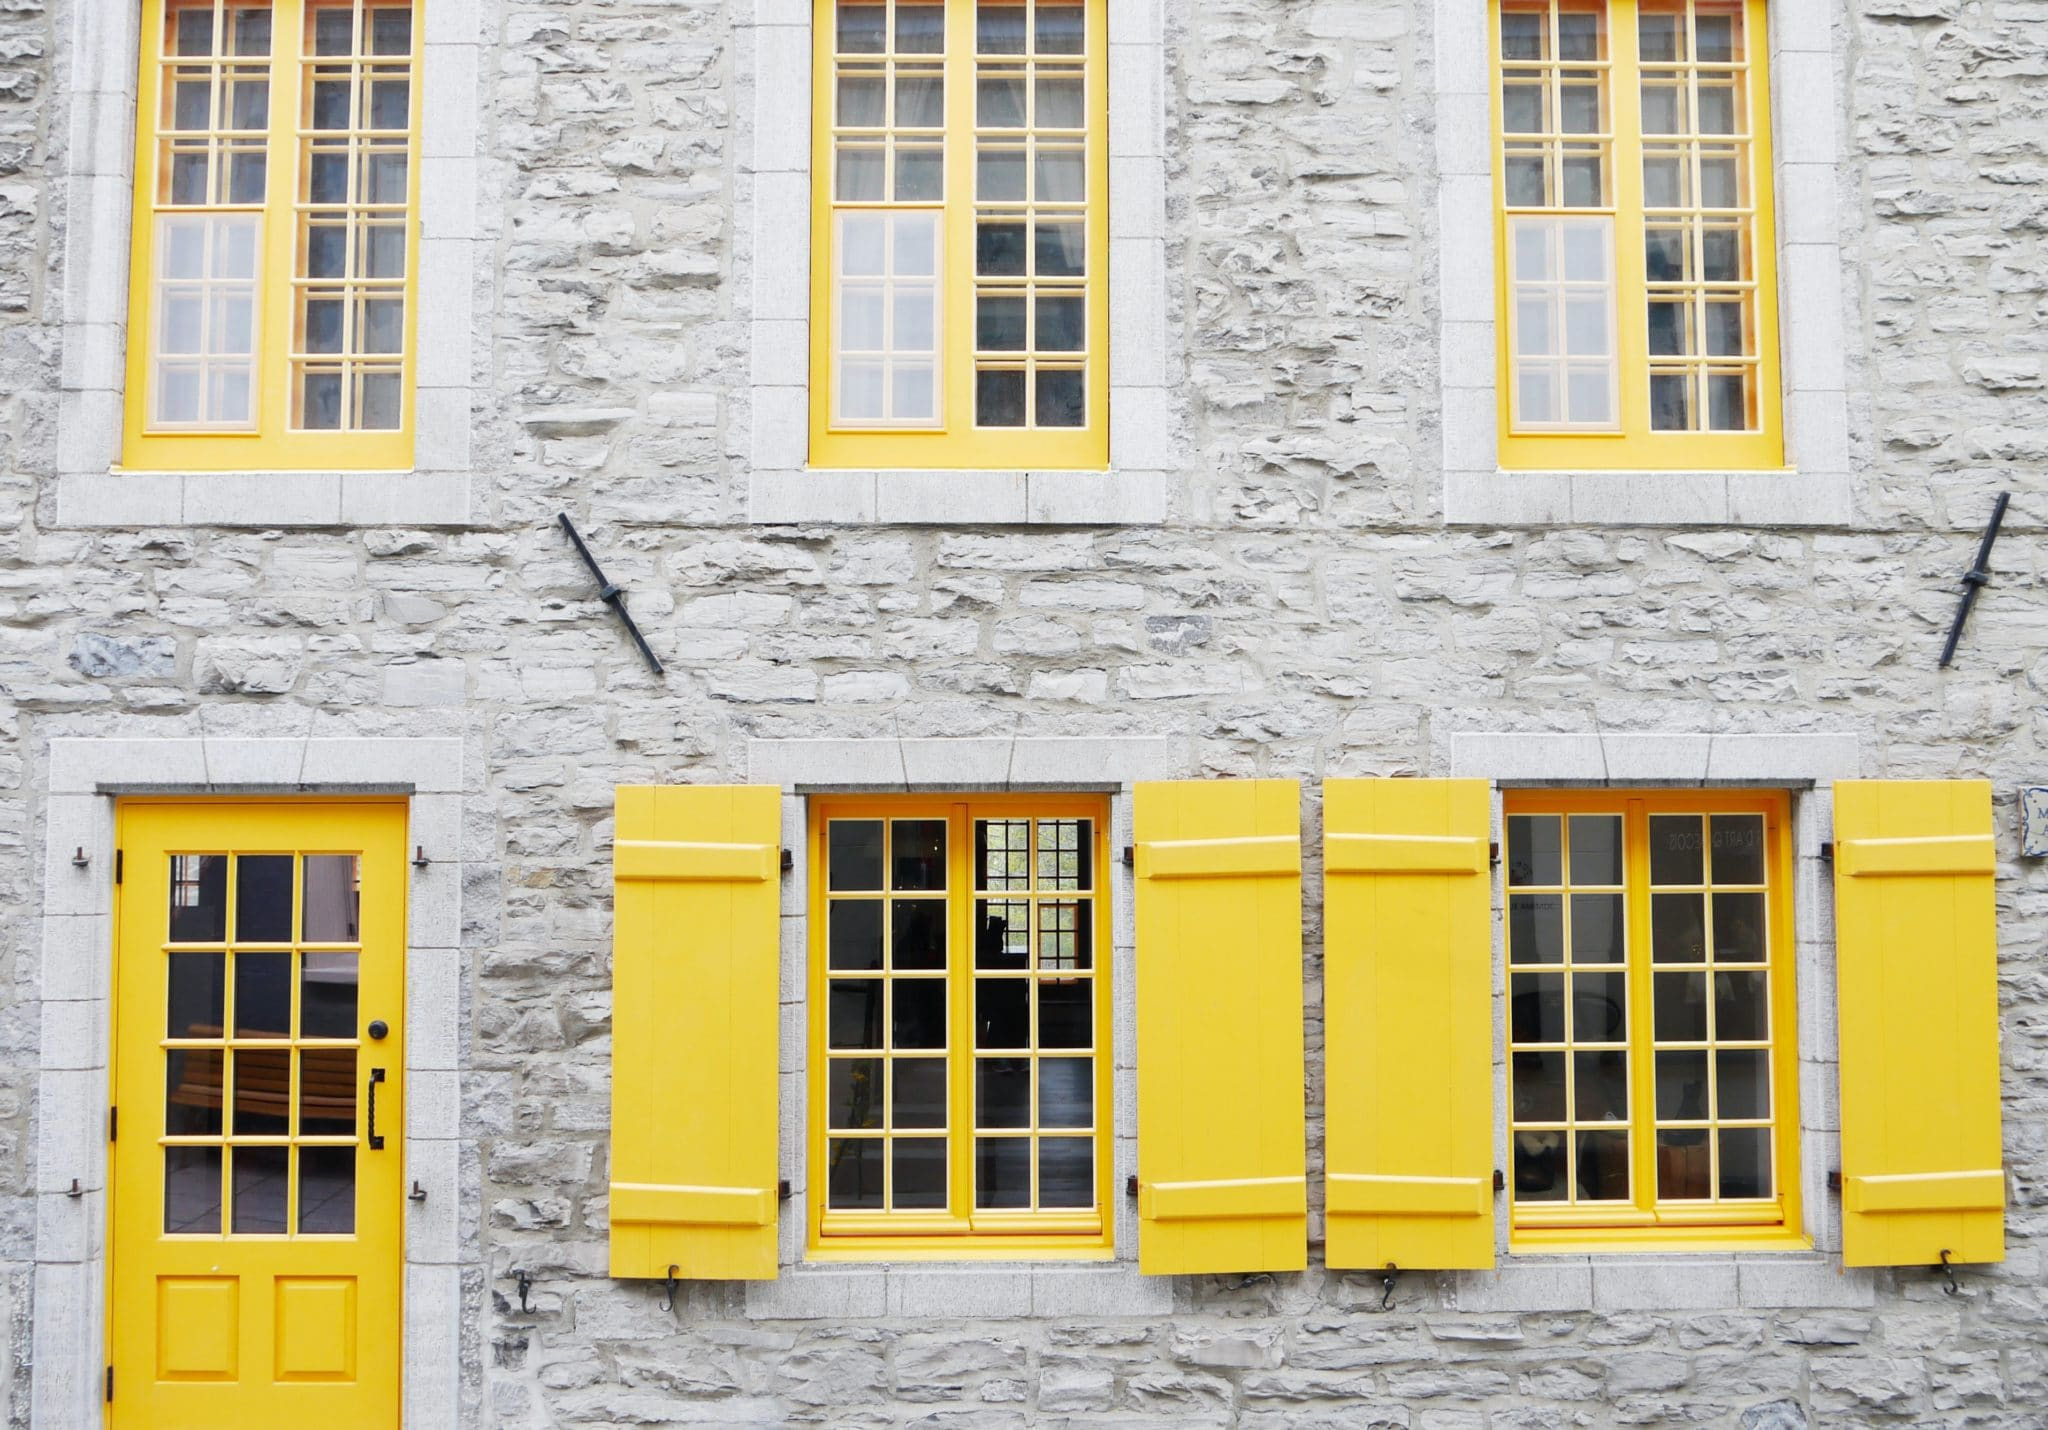 White, multi-story building with yellow windows and yellow door, signifying options for home inspection clients